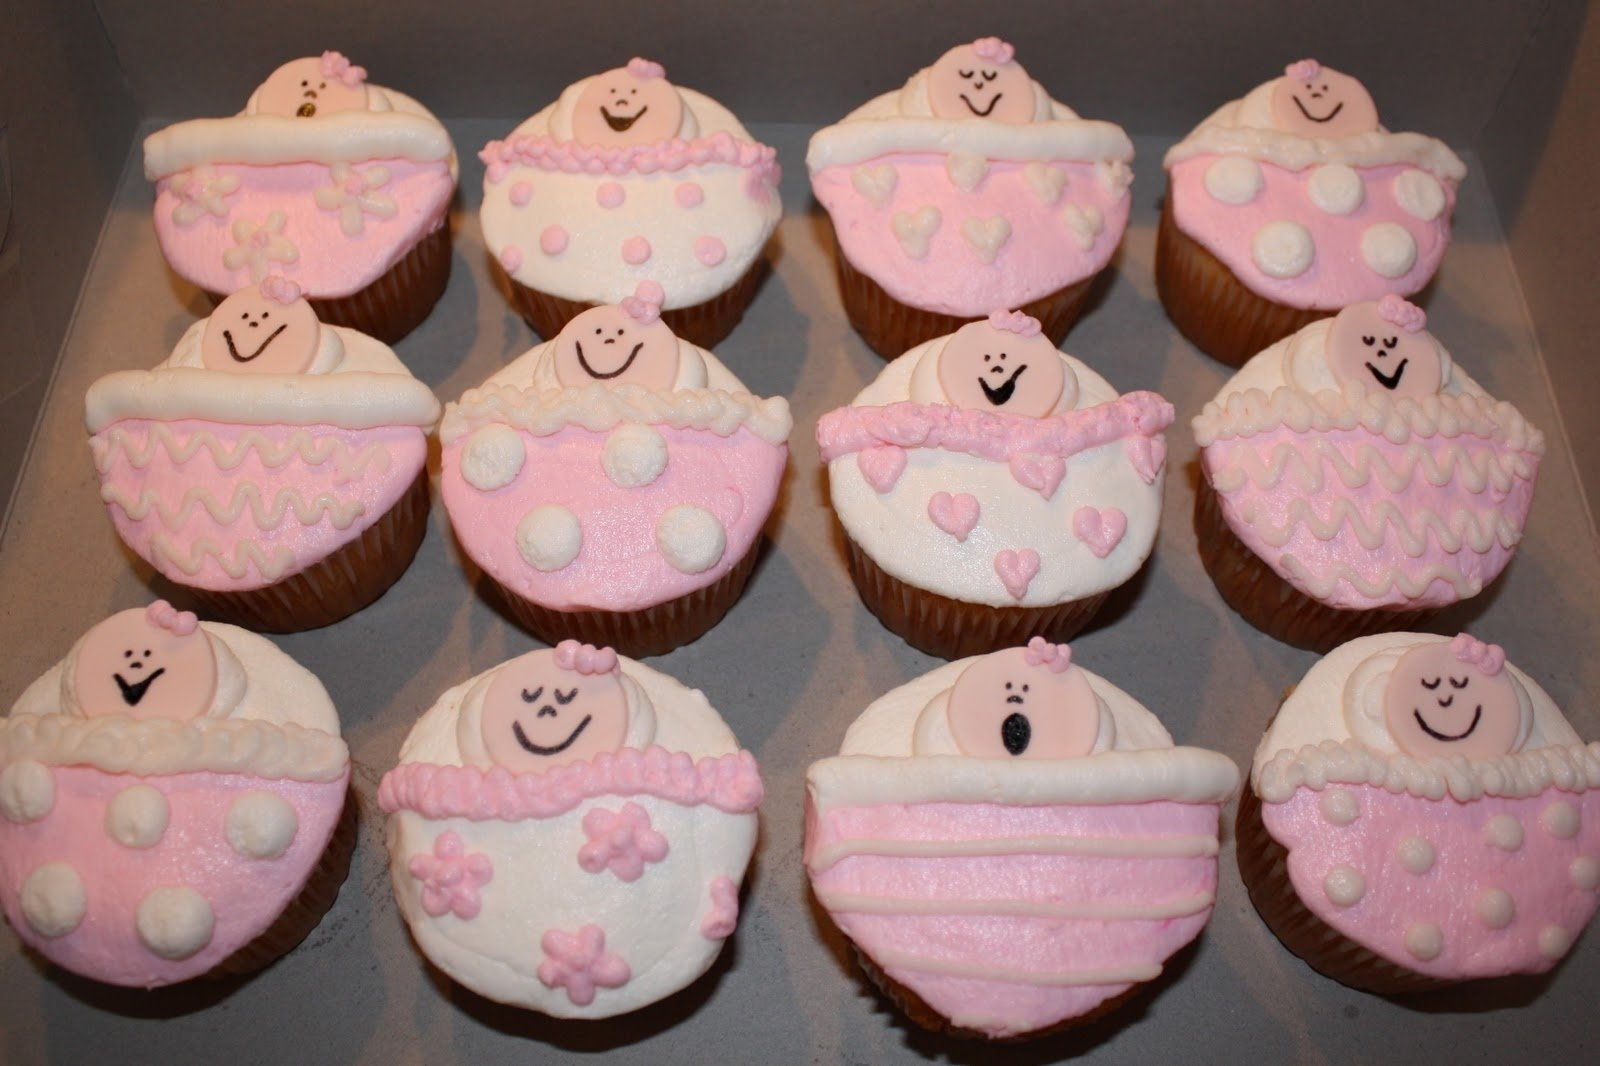 10 Lovely Cupcake Ideas For Baby Shower easy baby shower cupcakes for girls baby shower cakes 2 2021